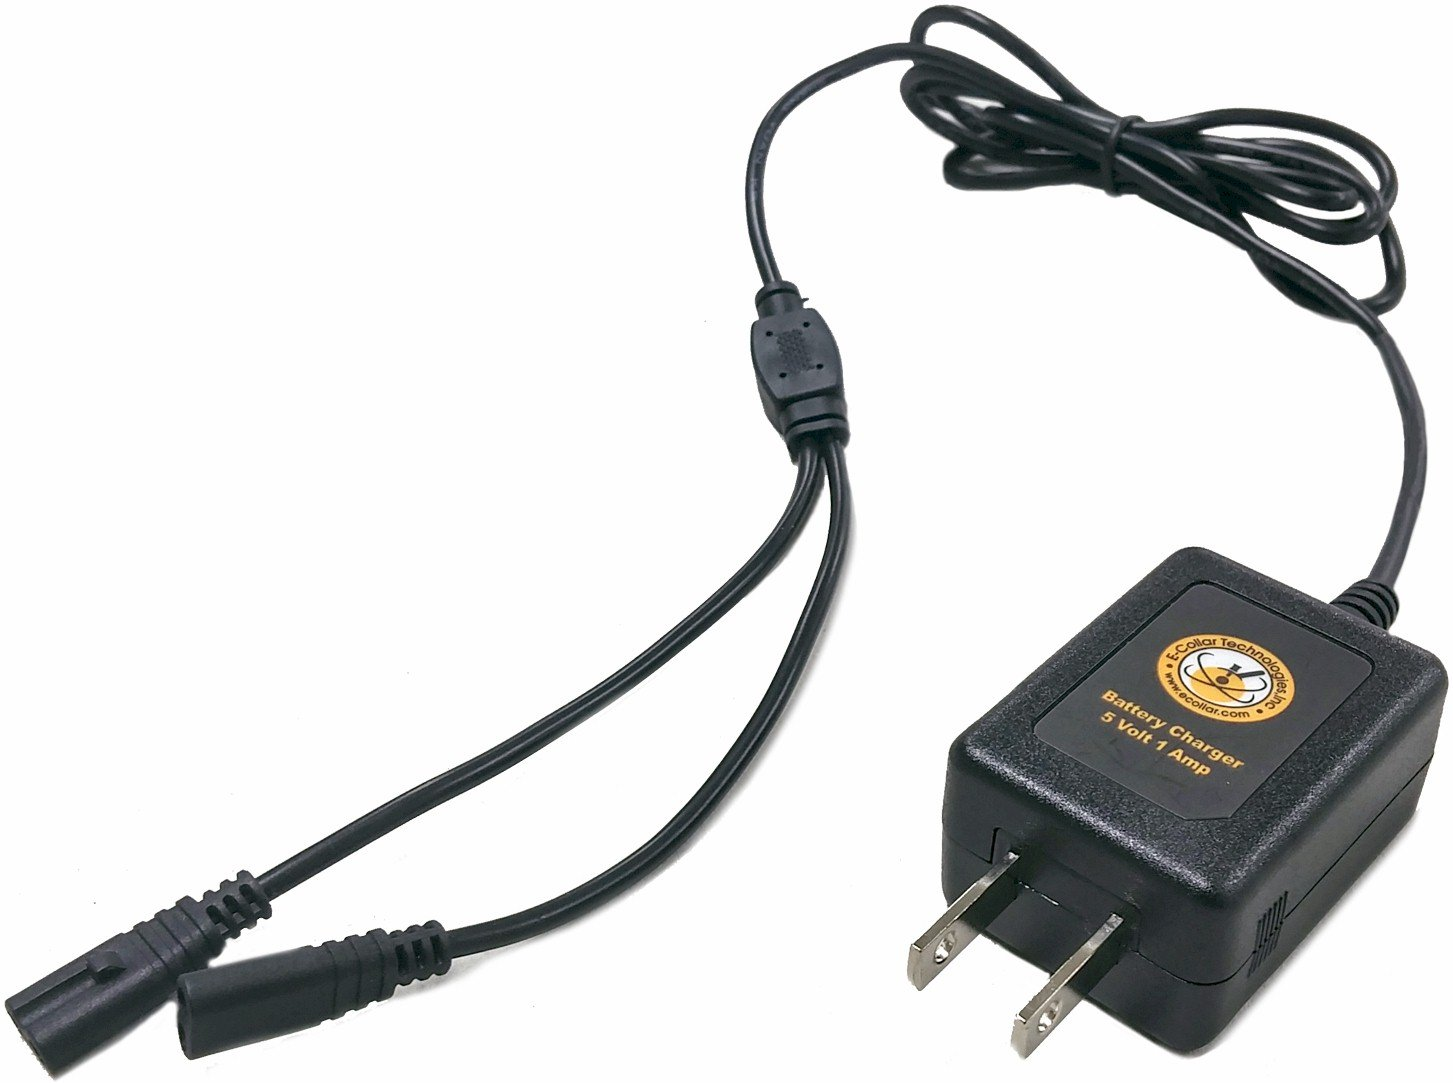 Educator Model 5V Dual Charger Dual Charger for Models ET-300TS ET-300TS-L ET-302TS ET-302TS-L and ZE-300TS